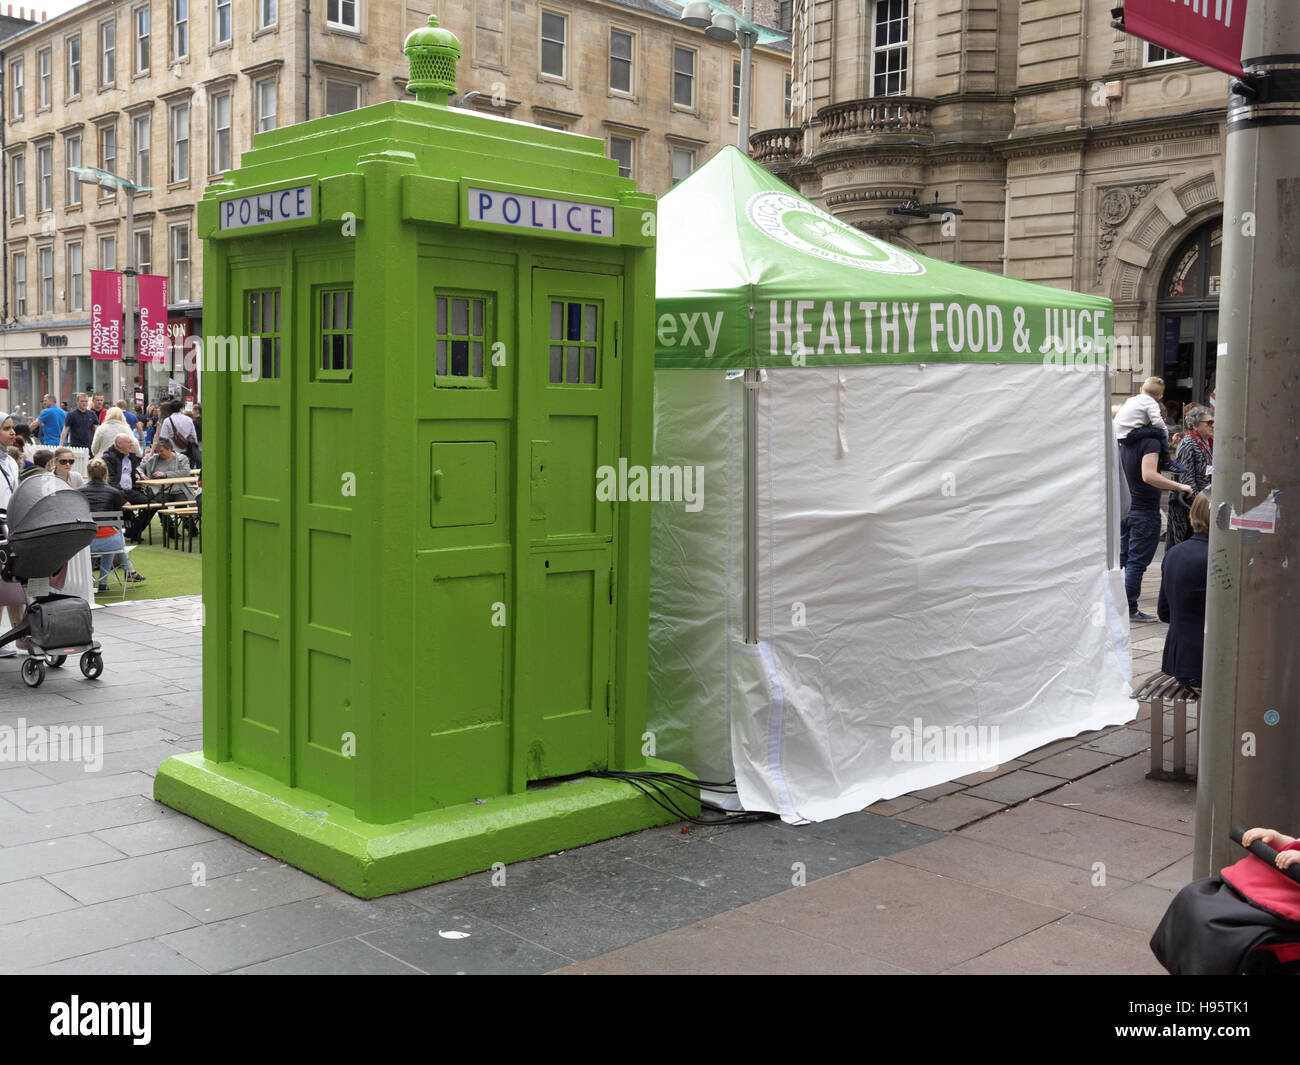 green vegan restaurant pop up police box dr who tardis  site for The Ivy Glasgow World-famous celeb hangout  opening - Stock Image